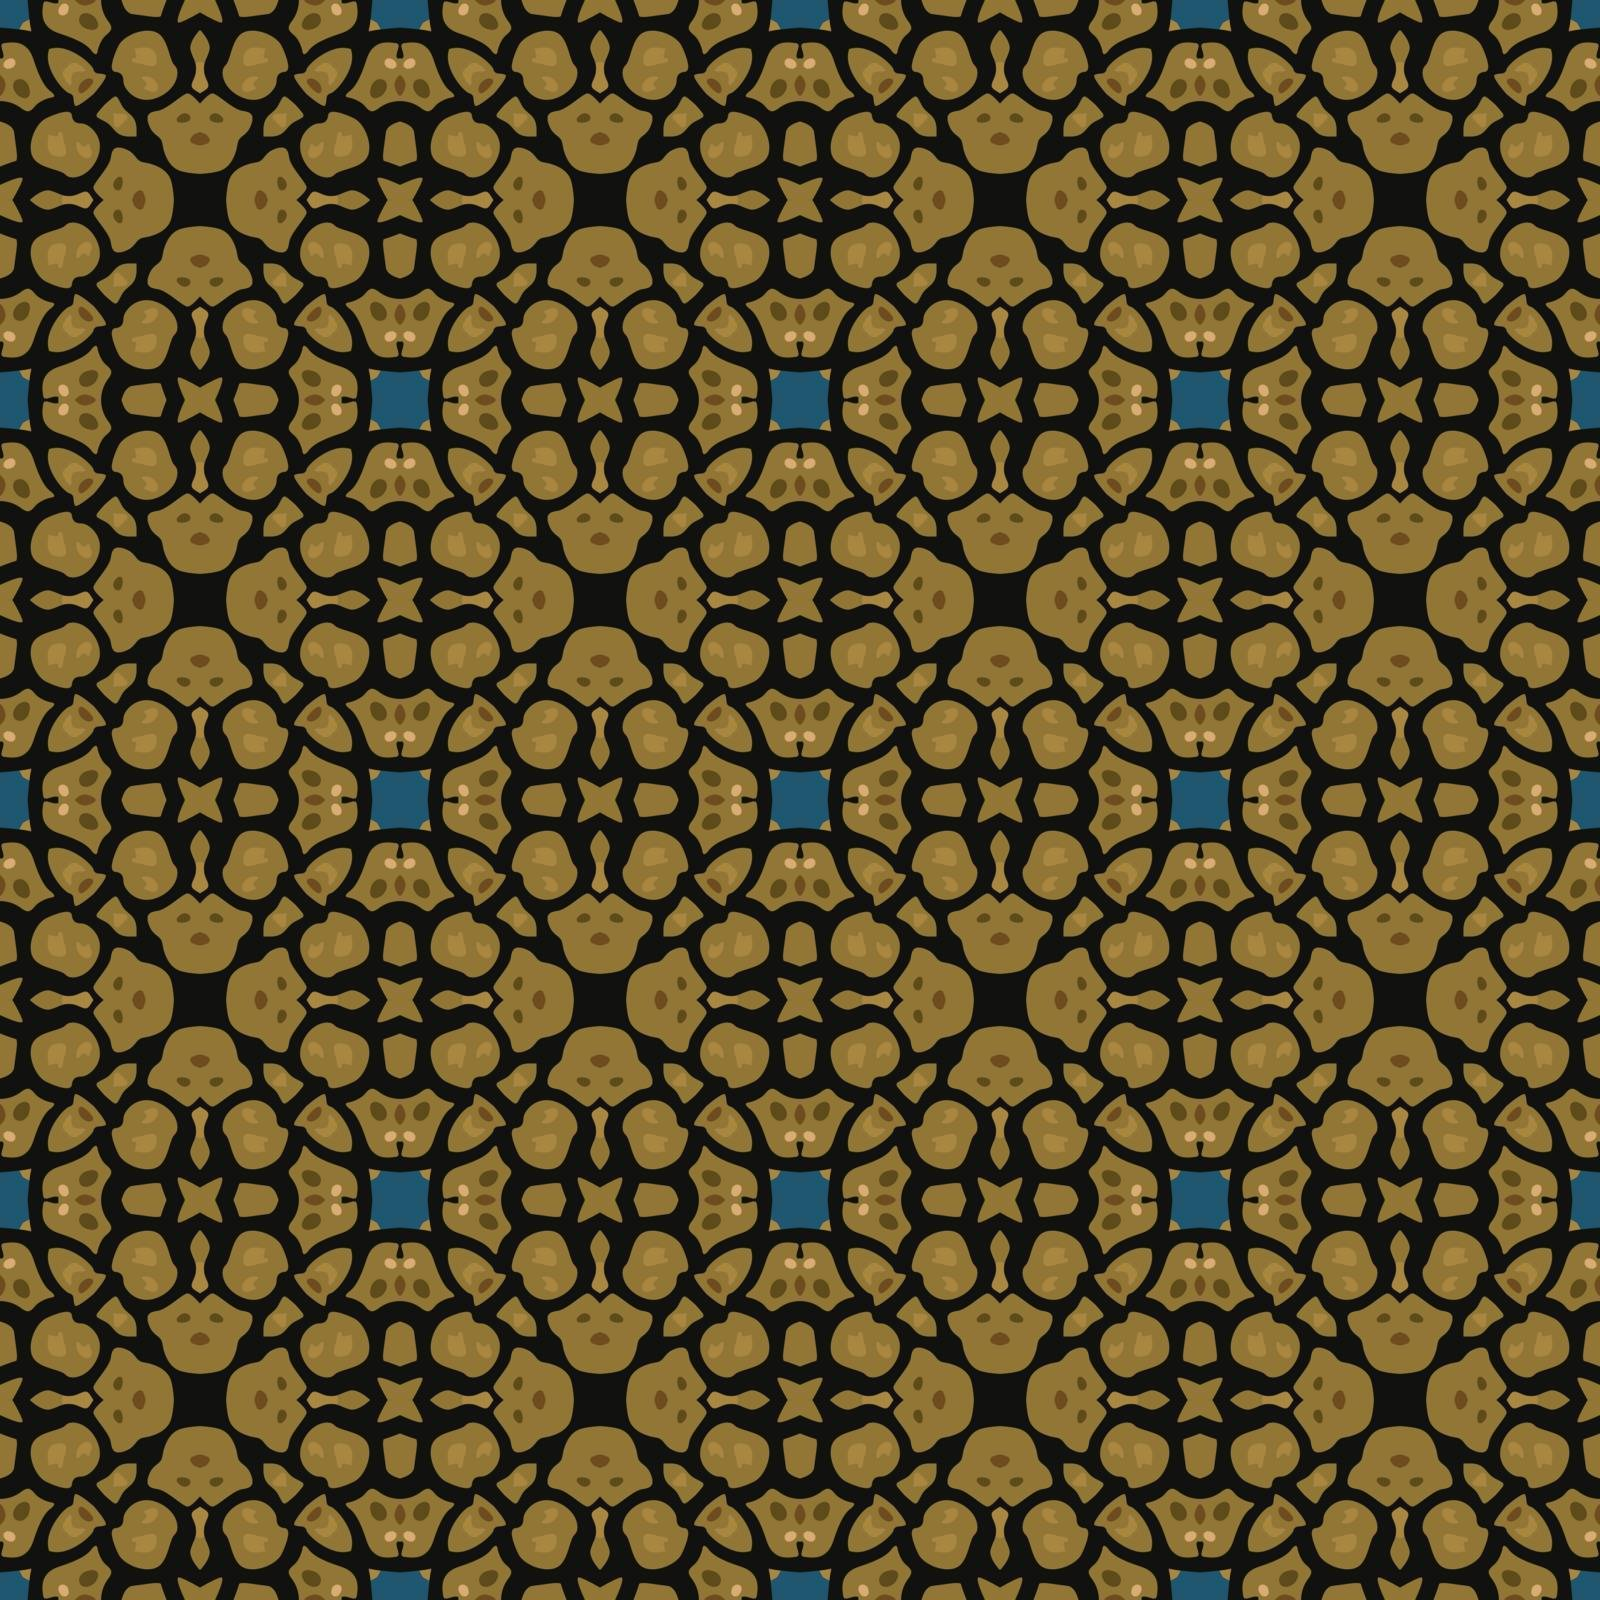 Seamless illustrated pattern made of abstract elements in blue, shades of brown and black